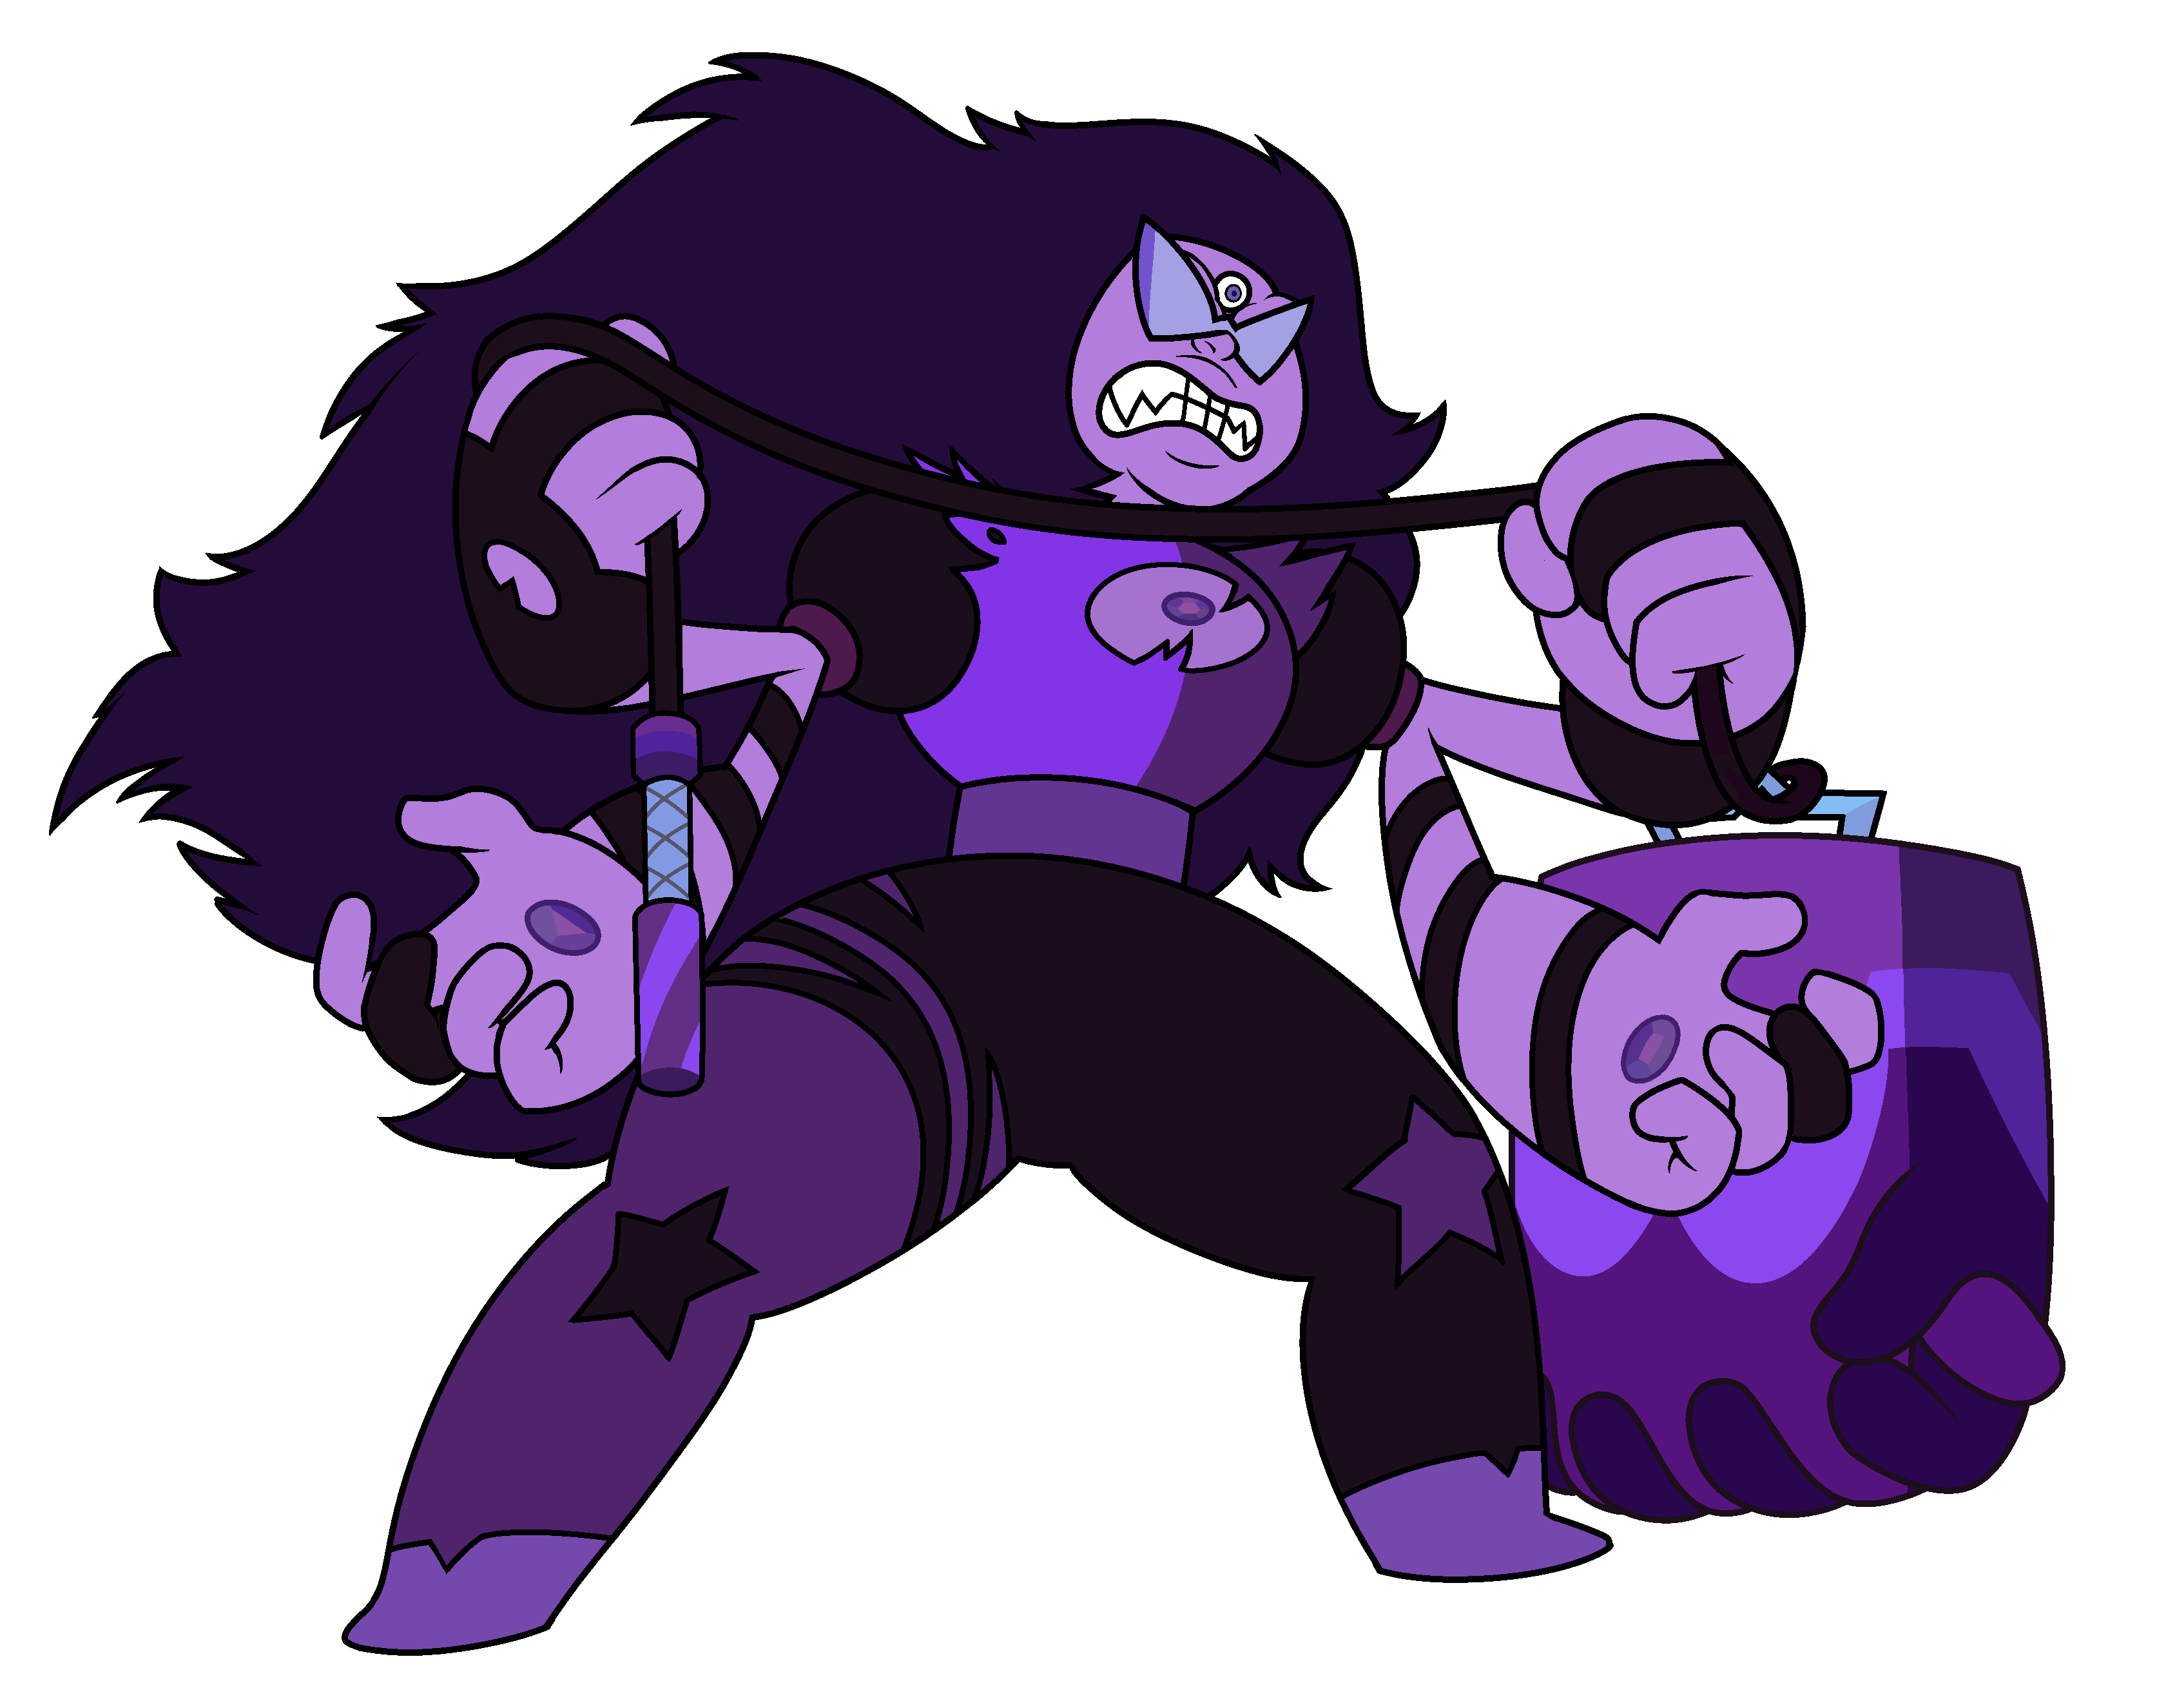 http://static.tvtropes.org/pmwiki/pub/images/sugilite.png